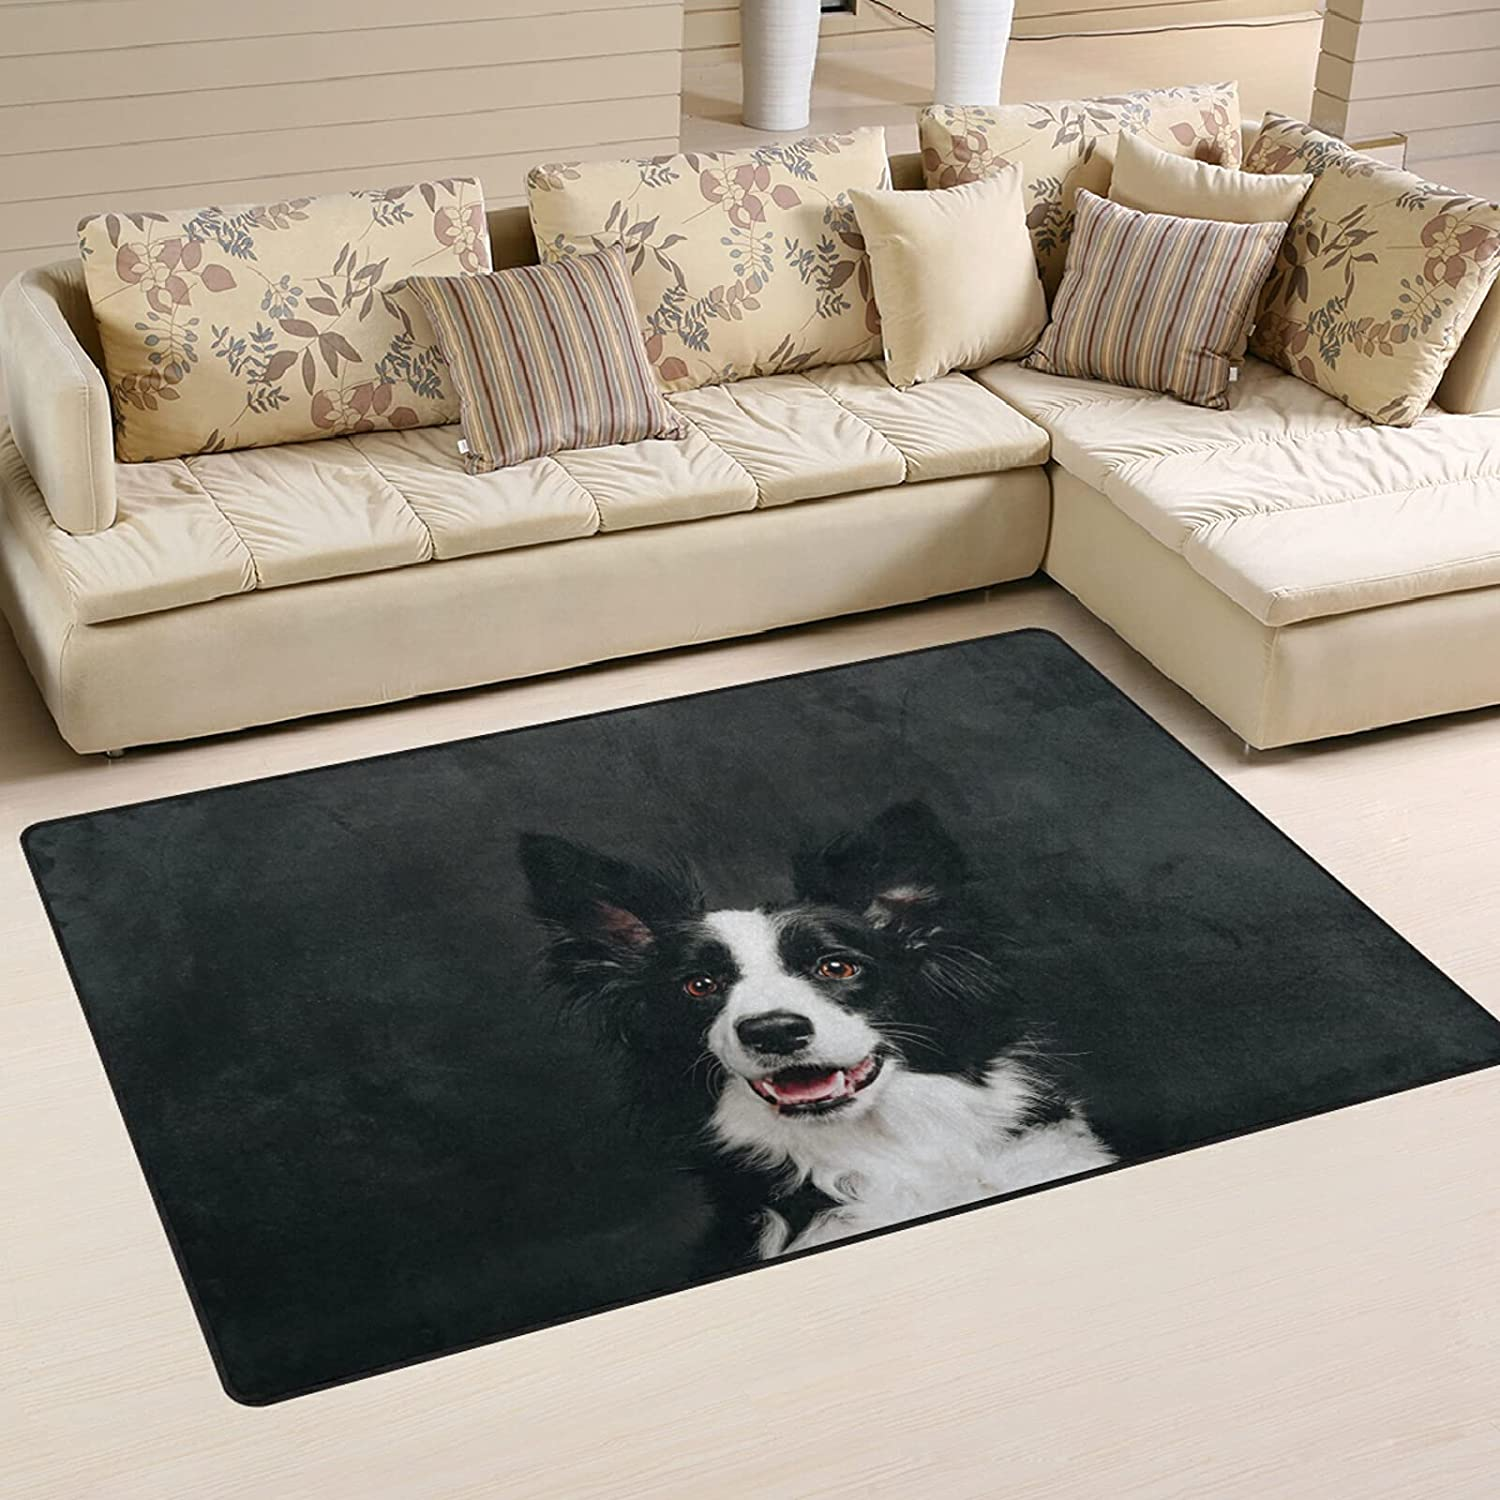 Border Collie Funny Dog Max 77% OFF Large Soft Don't miss the campaign Nursery Rug Playmat Rugs Area